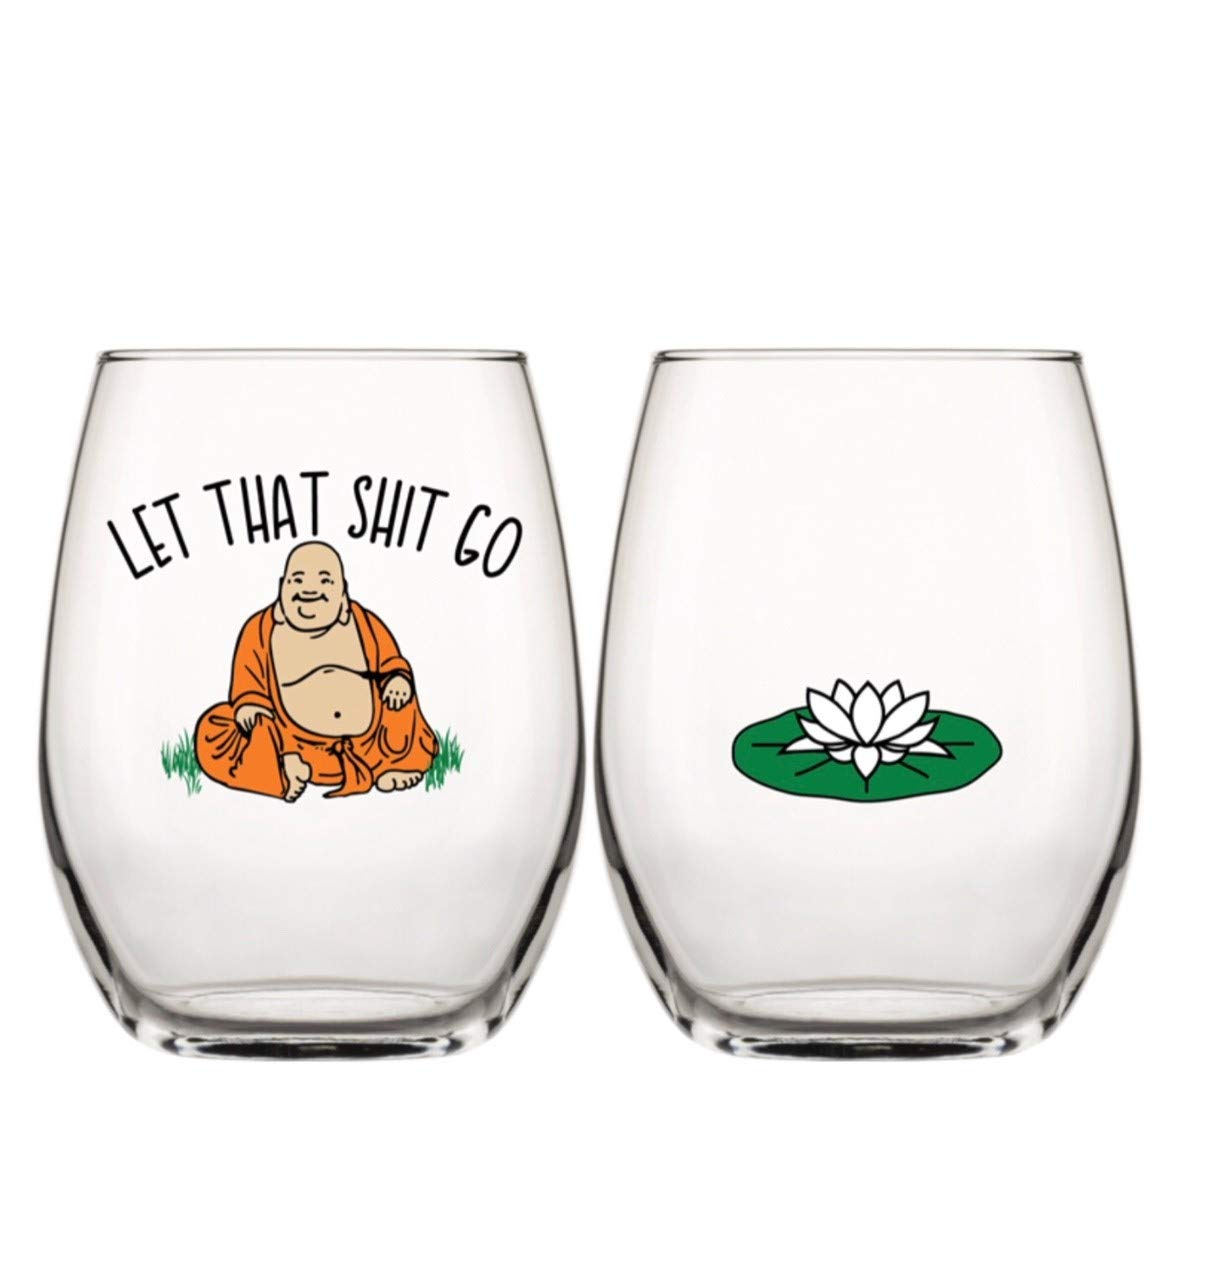 Drinking Divas 'Let That Shit Go' Buddha Wine Glass - Stemless Wine Tumbler | Funny Gifts with Sayings for Women | For A Yoga Teacher, Best Friend, Mom, Sister, Birthday or Bachelorette Party